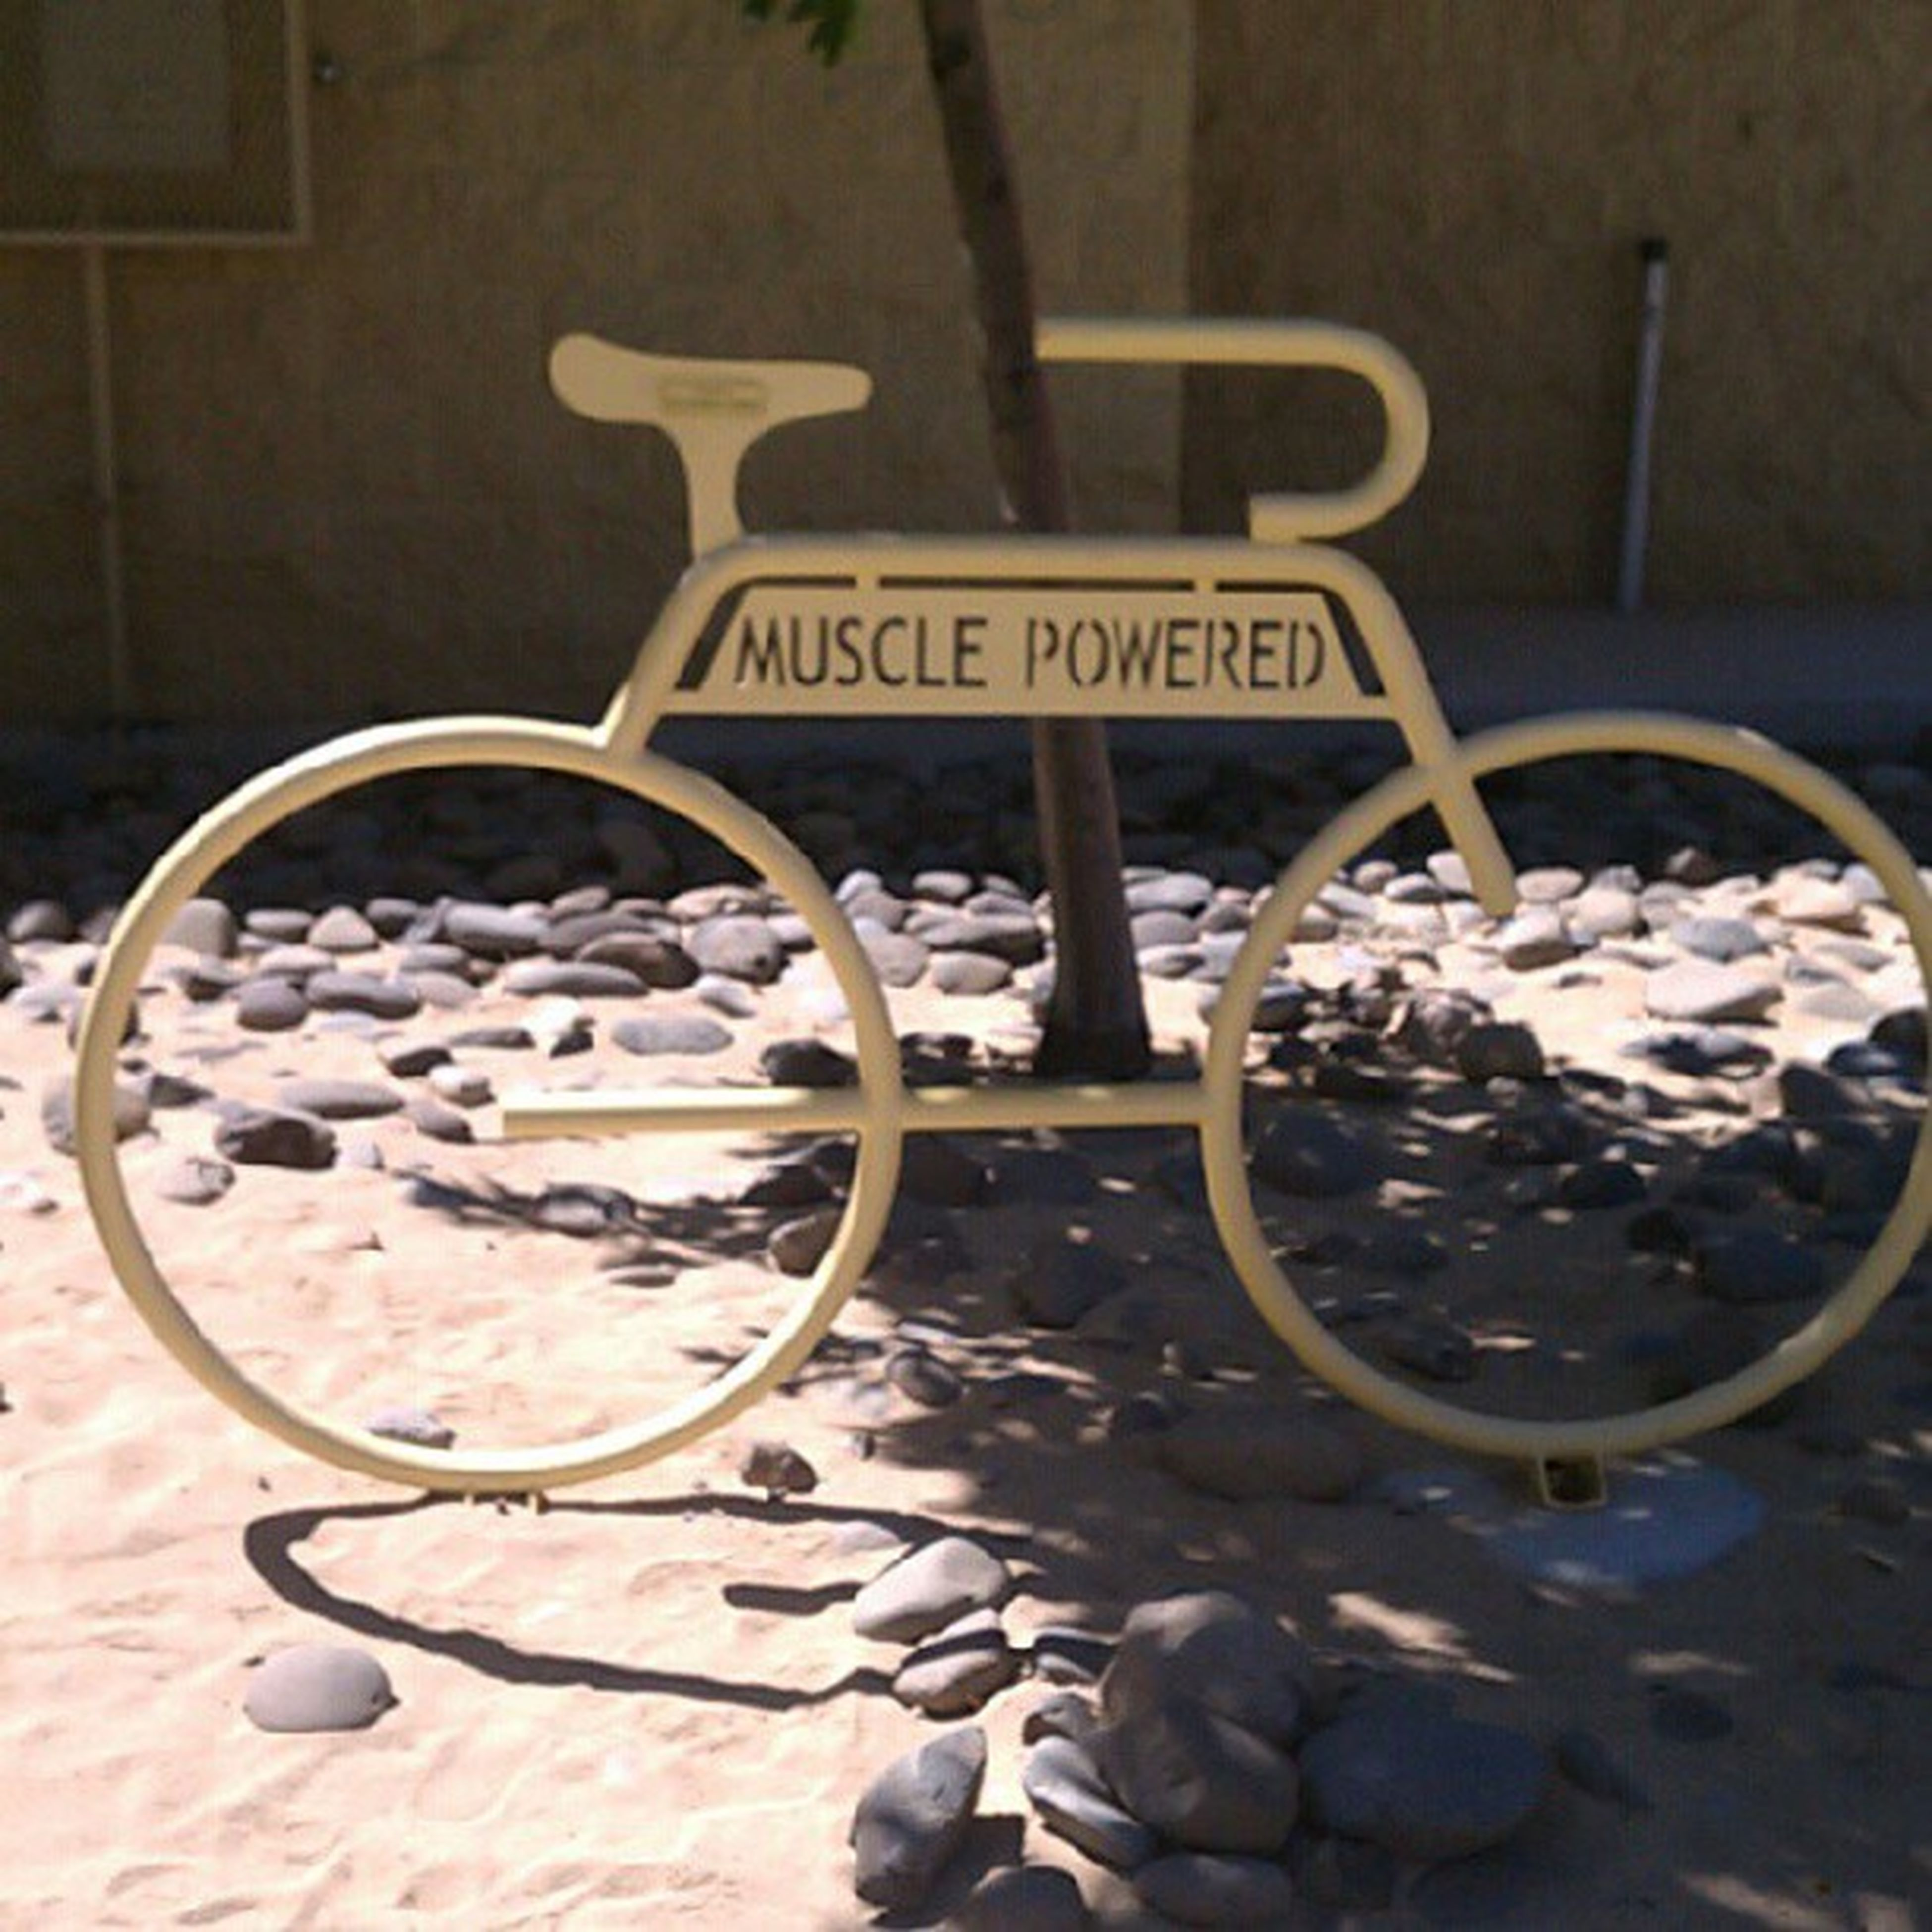 bicycle, transportation, text, mode of transport, no people, land vehicle, day, outdoors, stationary, street, high angle view, western script, close-up, communication, parking, parked, wheel, wall - building feature, sunlight, sidewalk